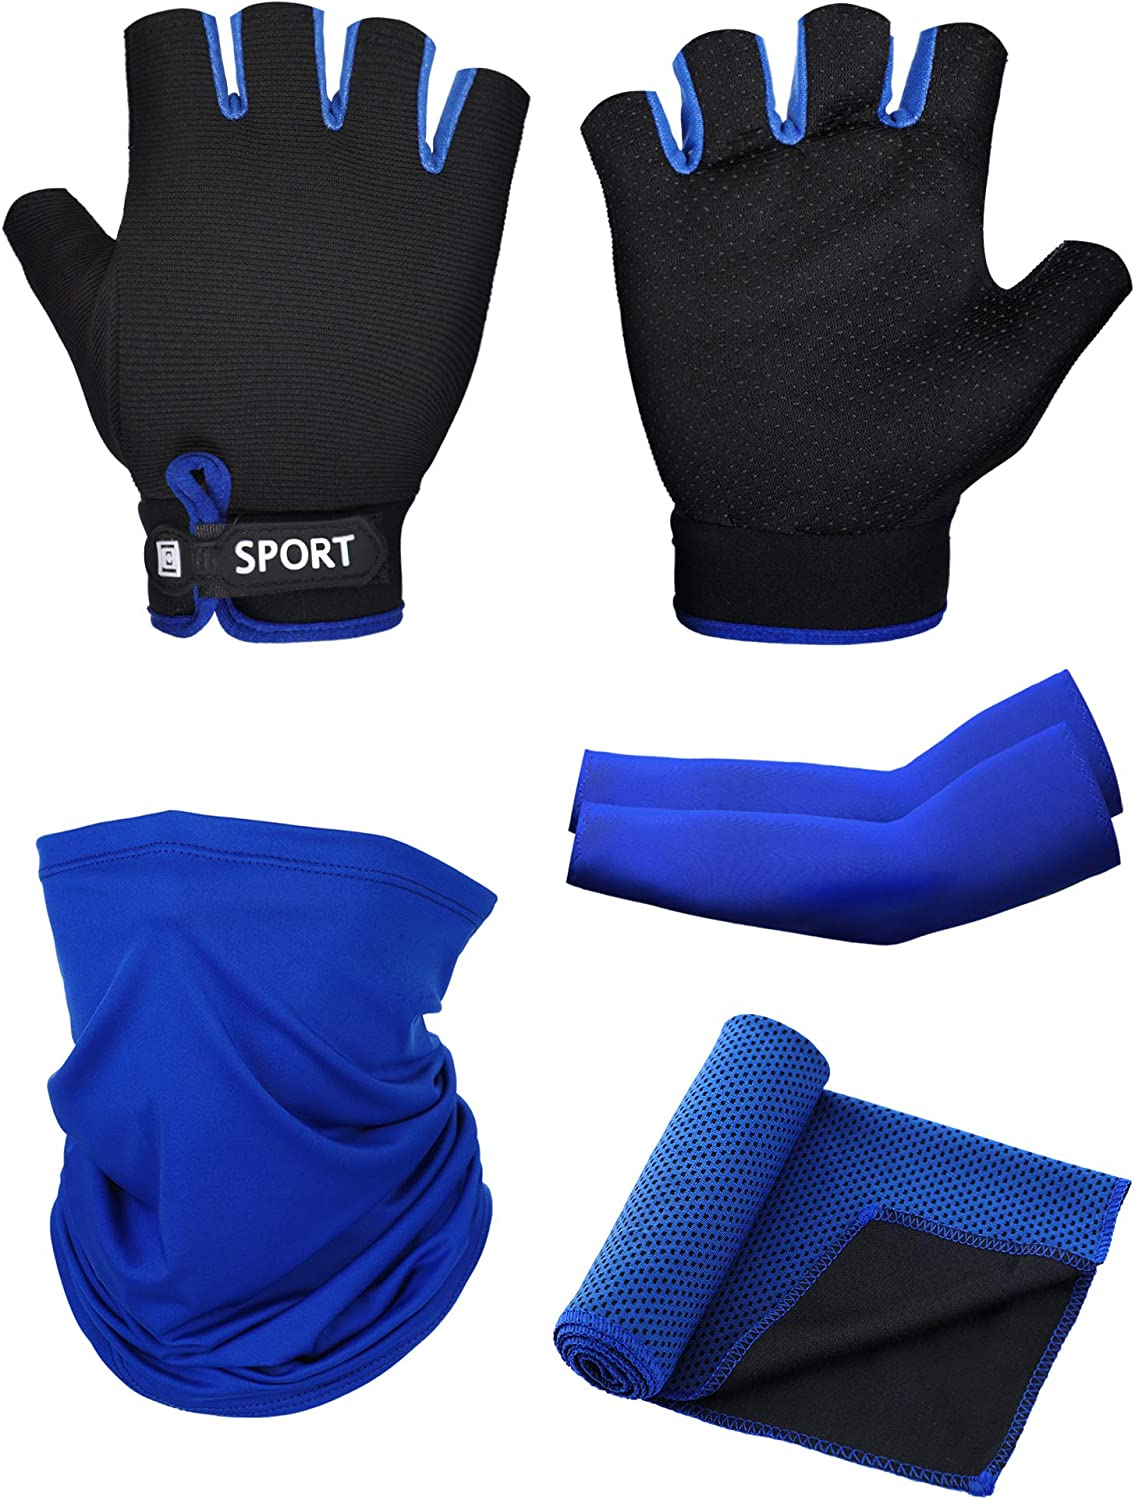 SATINIOR 4 Pack Sun Protection Kit Include Half Finger Cycling Fishing Gloves, Cooling Arm Sleeves, Cooling Sports Towel and Neck Gaiter Scarf for Fishing Climbing Outdoor Activities